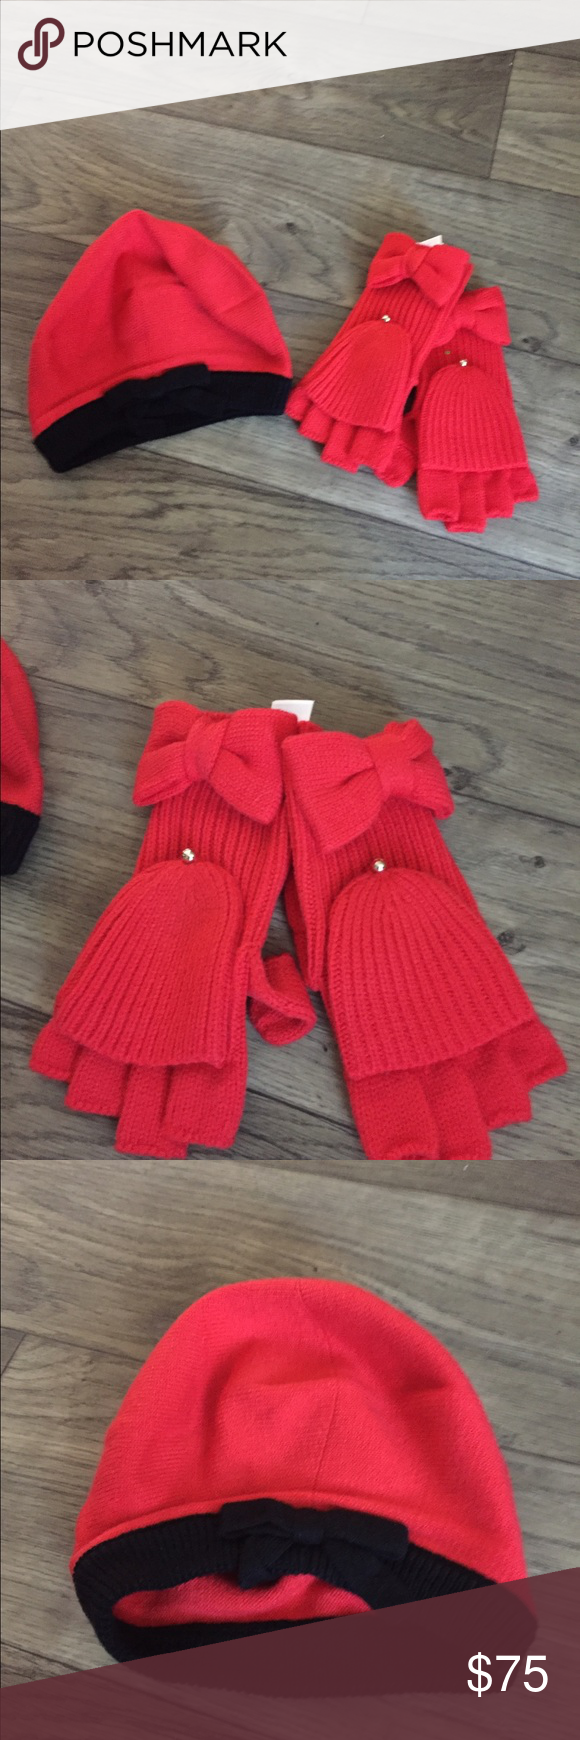 KATE SPADE SOLID BOW GLOVES & CONTRAST BOW BERET knit gloves have a removable top and thumb sections. Hat is contrast beret features kate spade Accessories Hosiery & Socks